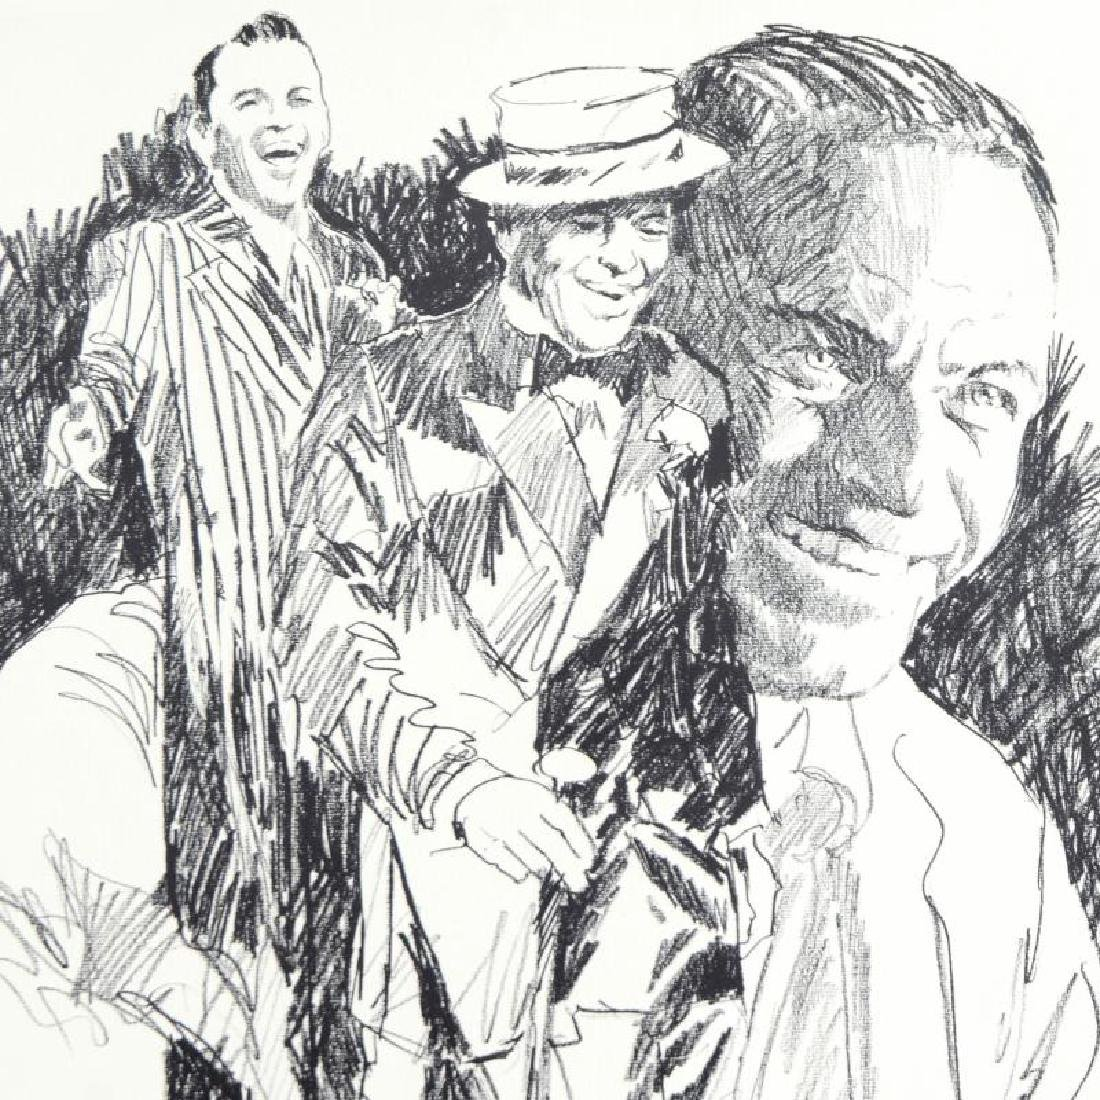 Sinatra Limited Edition Serigraph by Paul Blaine Henrie - 2